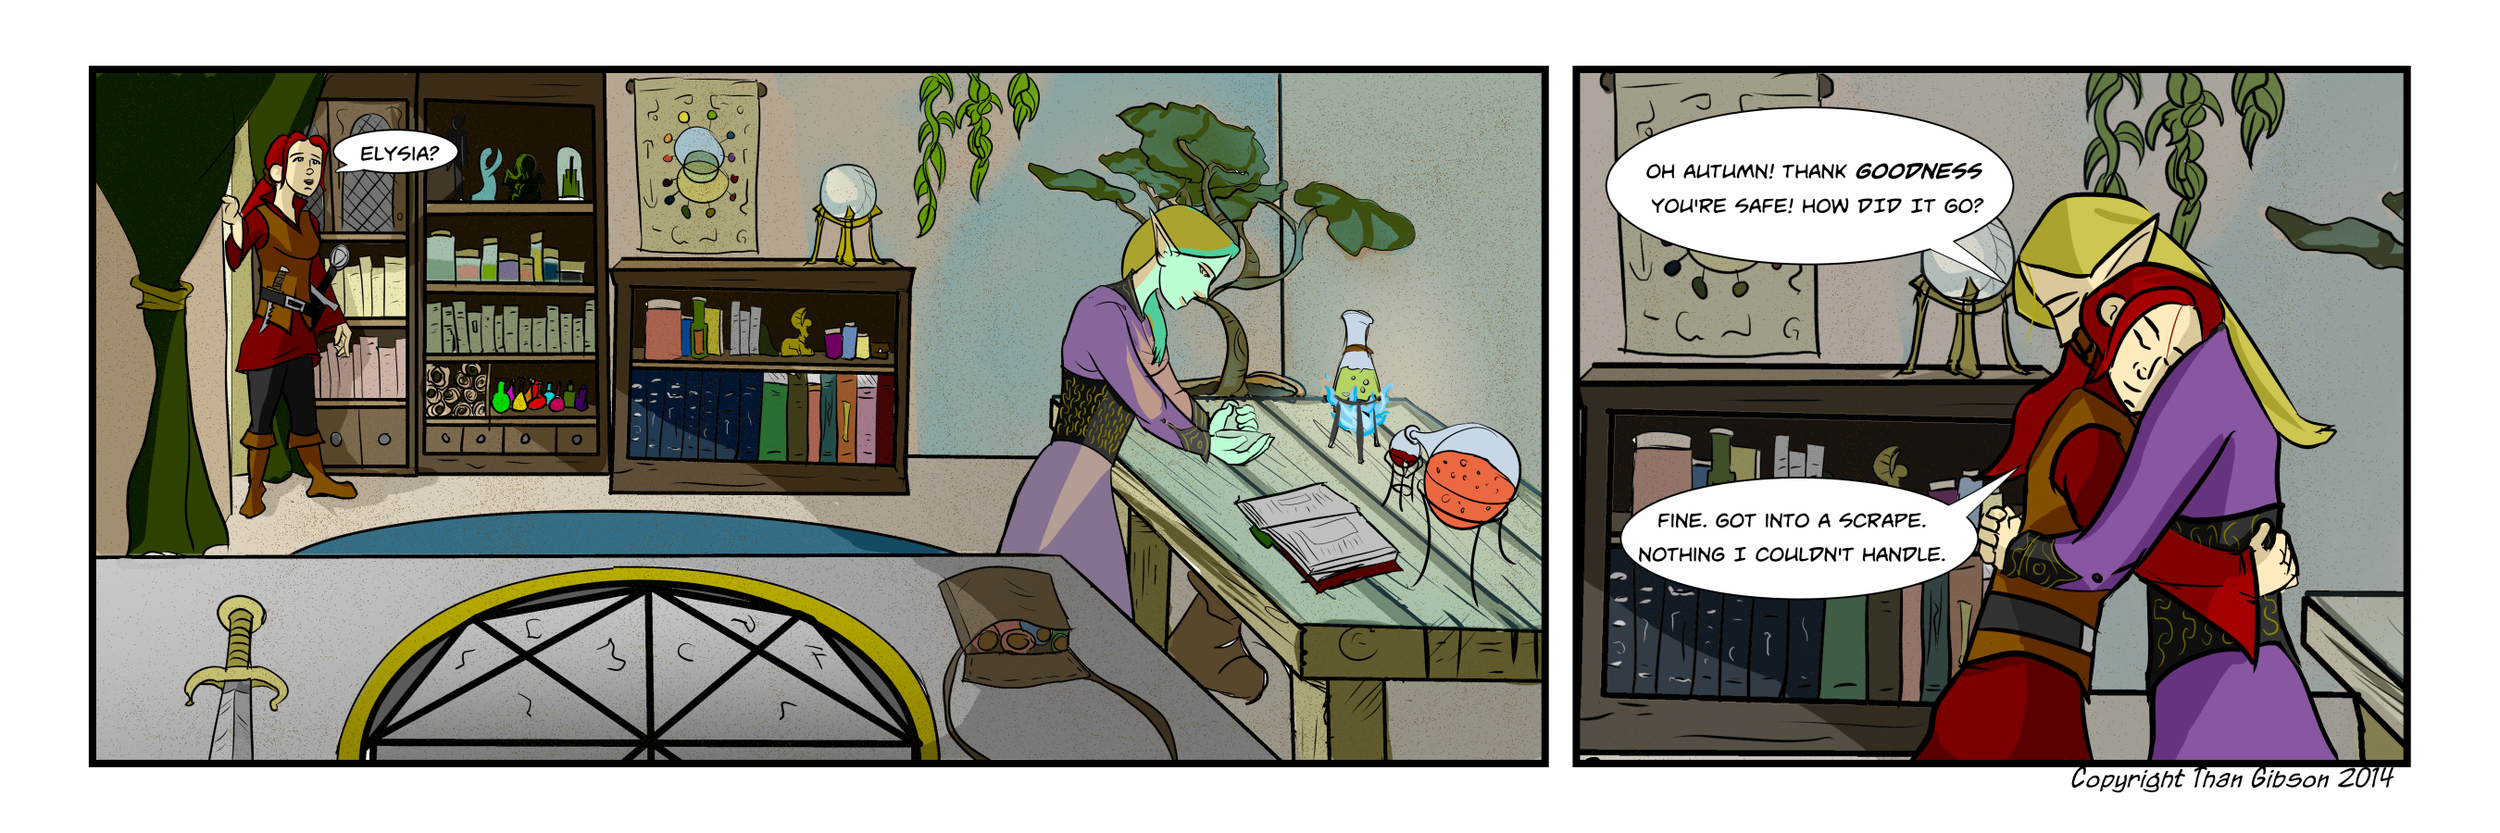 Strip 8 -Click the image for a larger view!